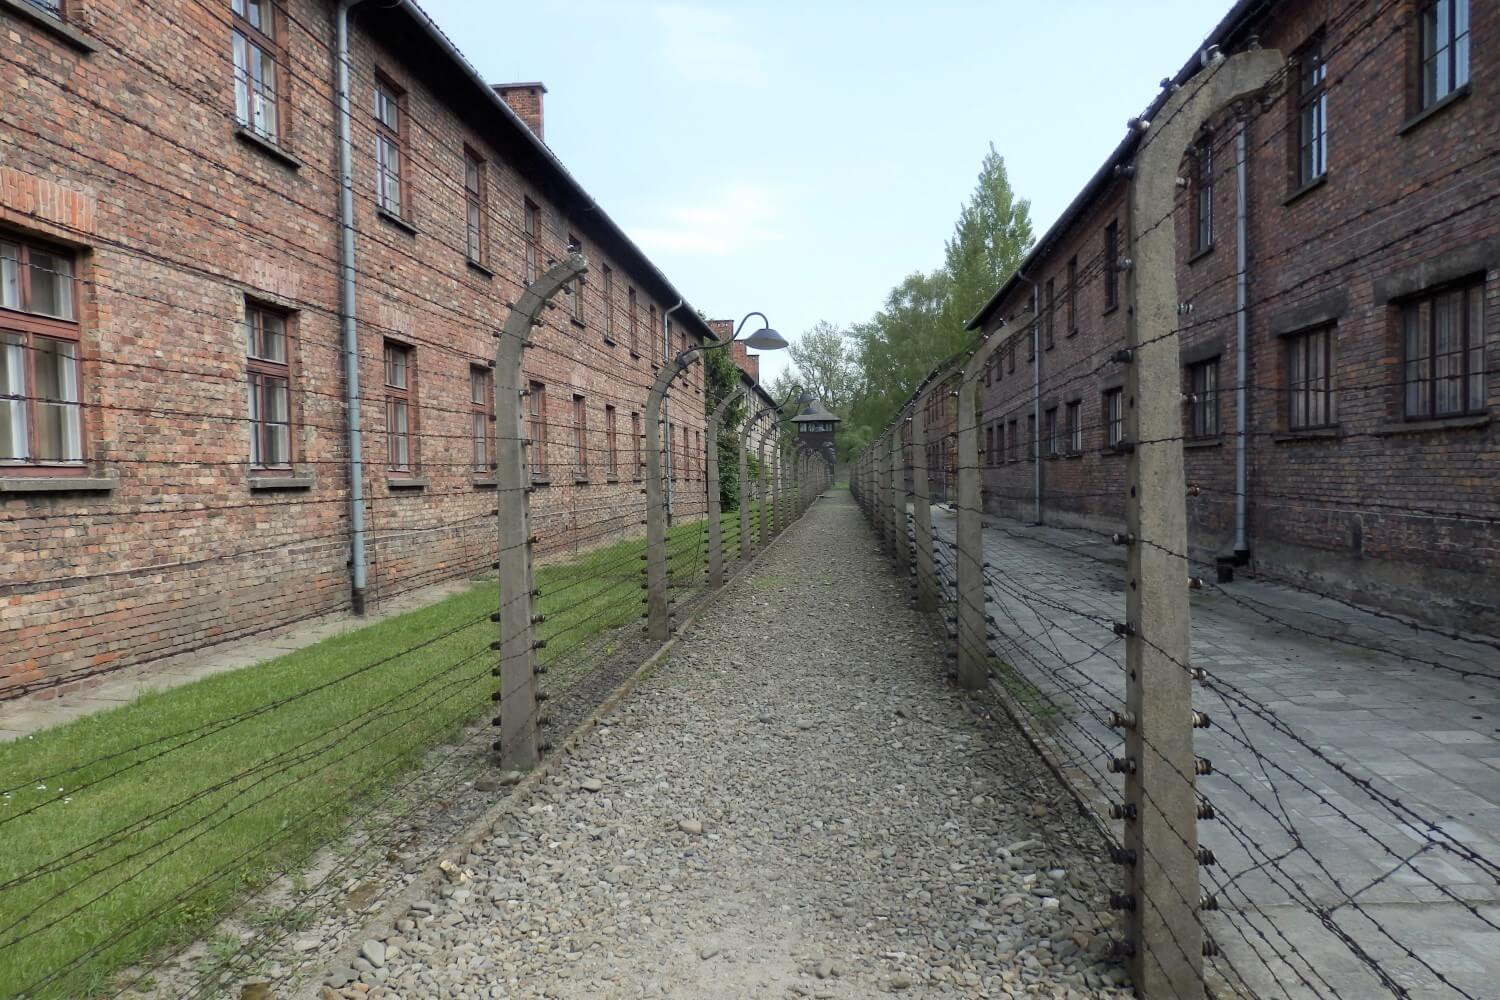 The concentration Camp Auschwitz I in Poland